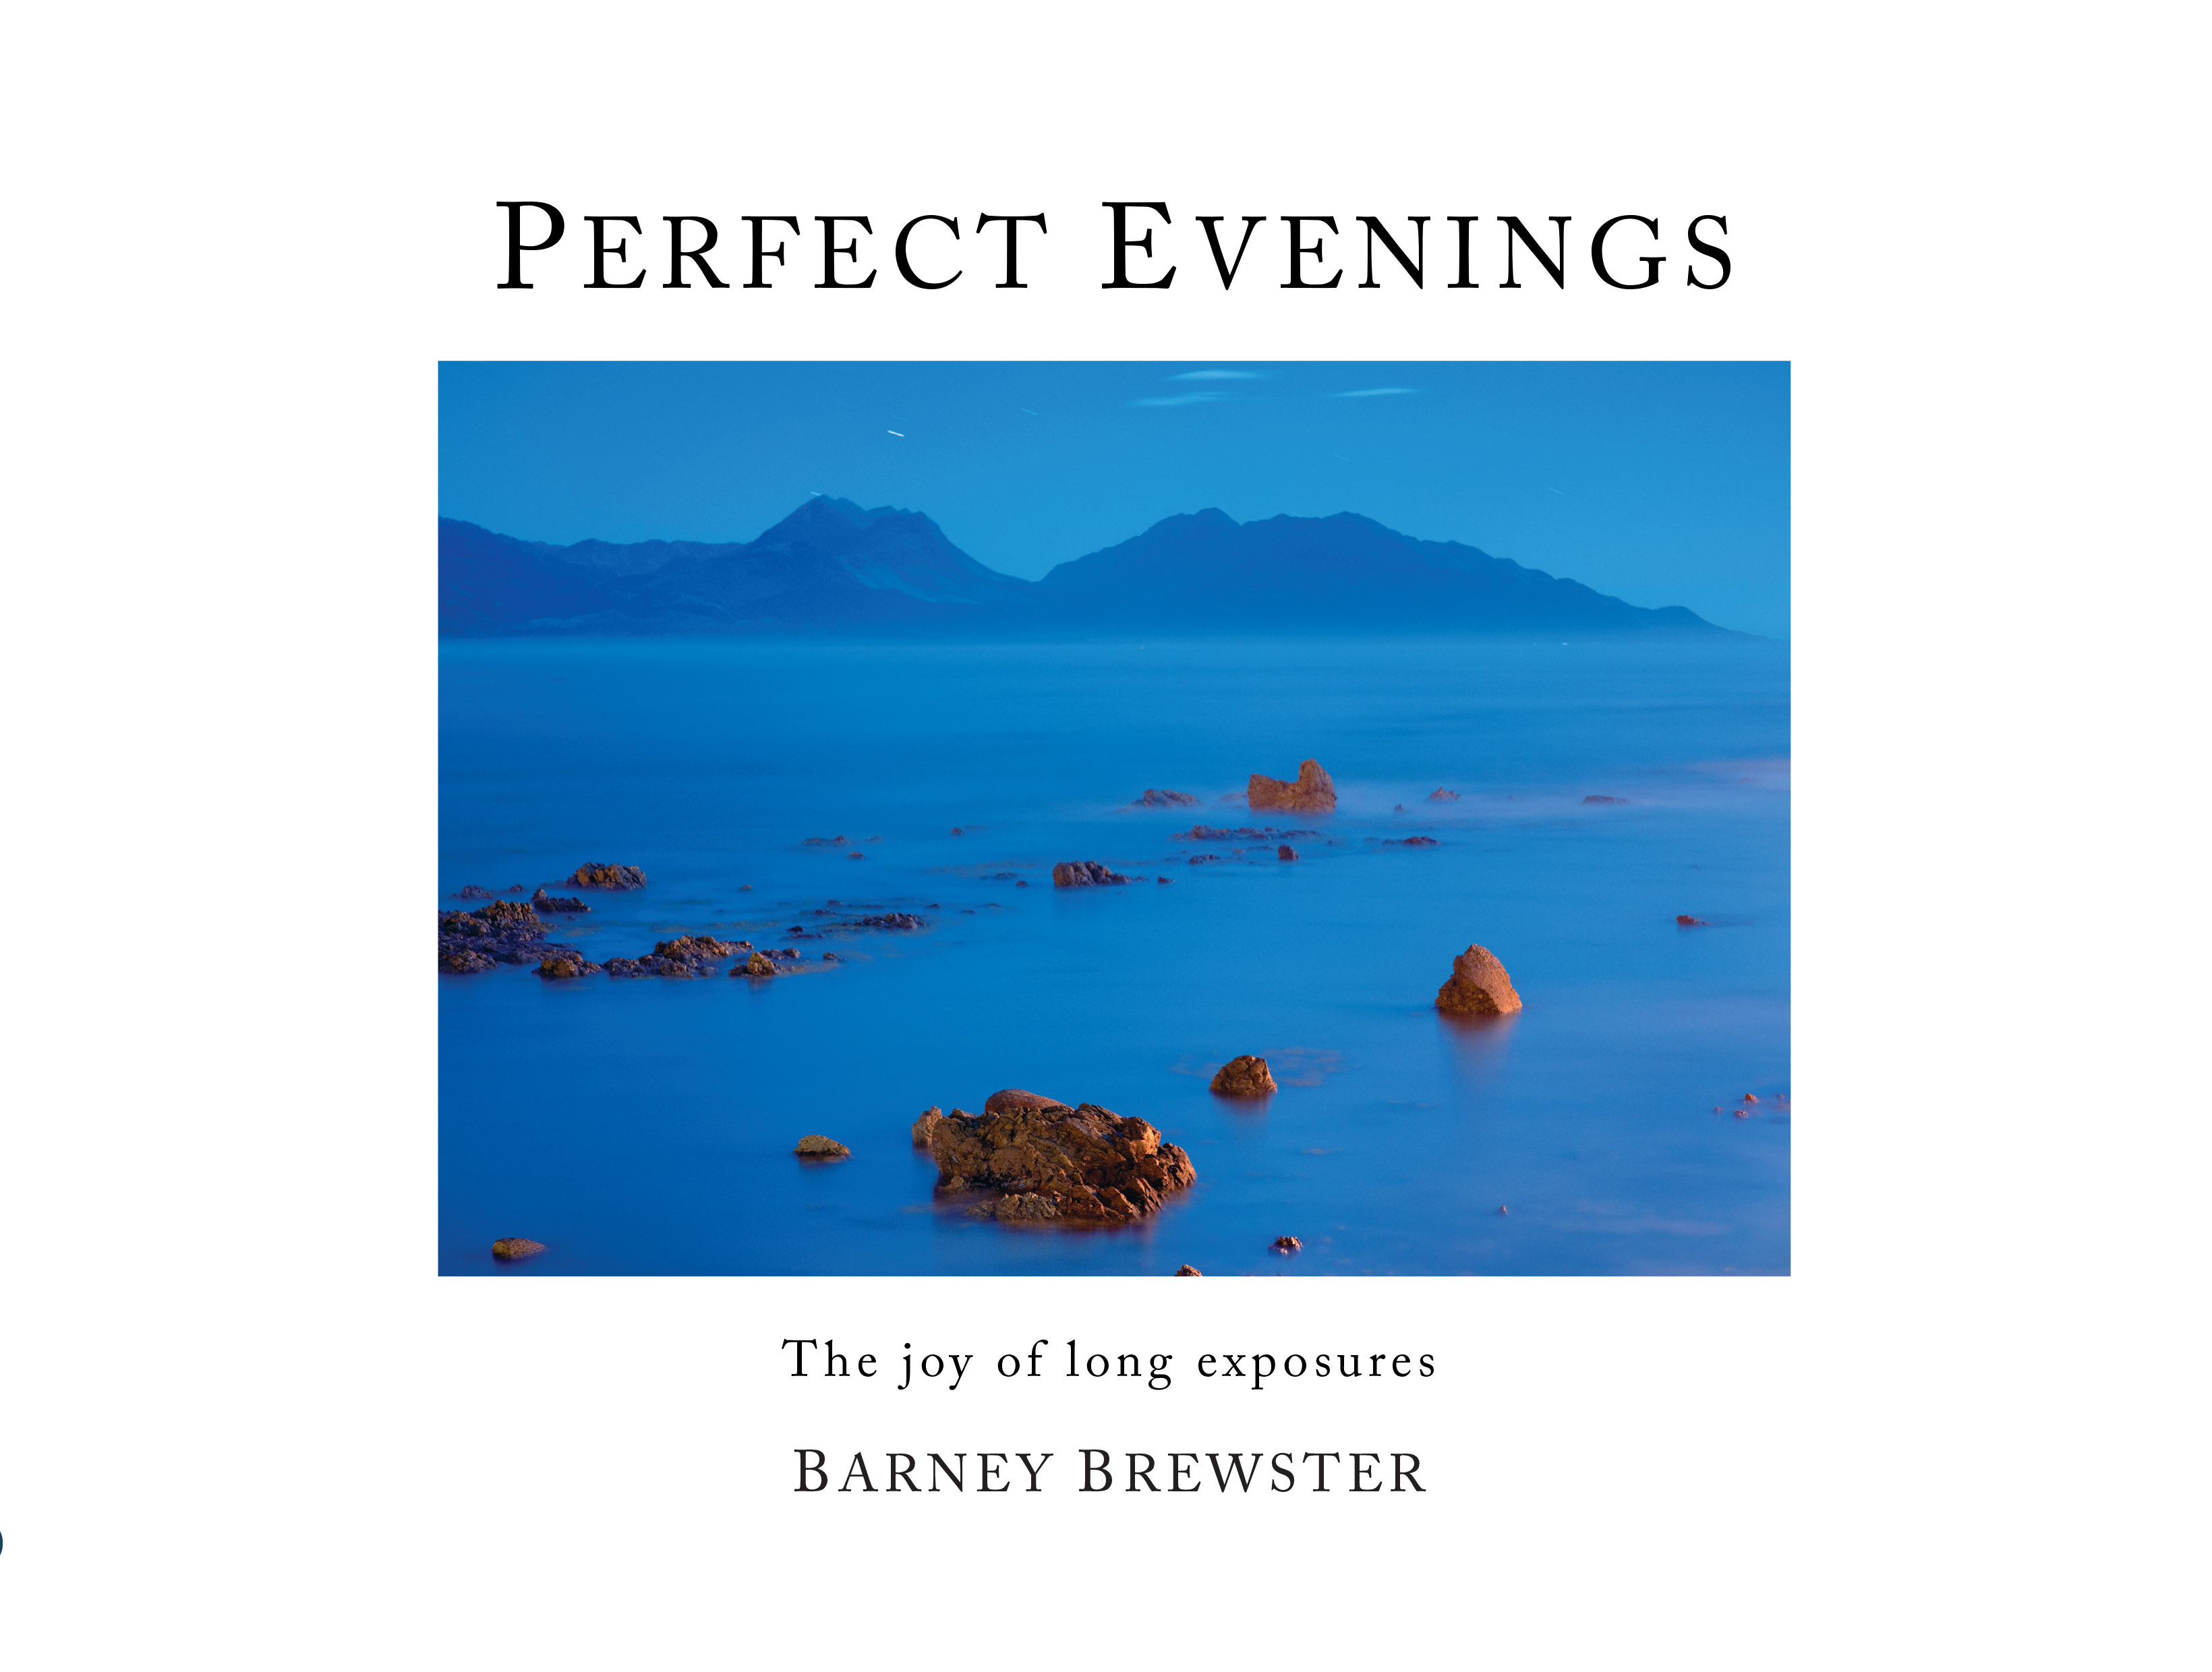 Perfect Evenings photo book